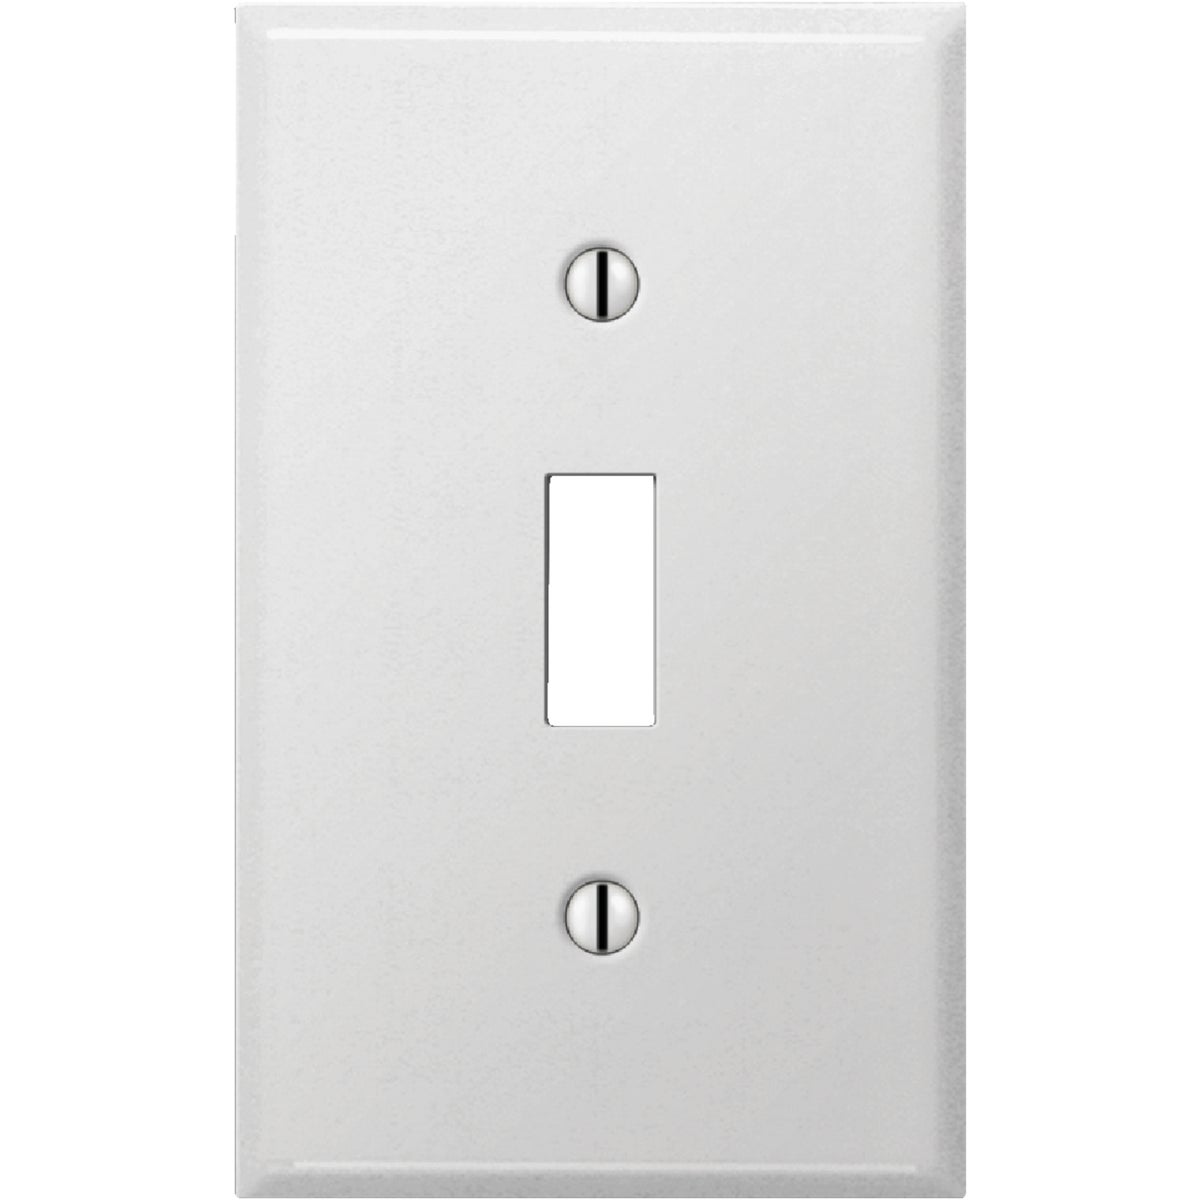 WHT SWITCH WALL PLATE - 8WS101 by Jackson Deerfield Mf